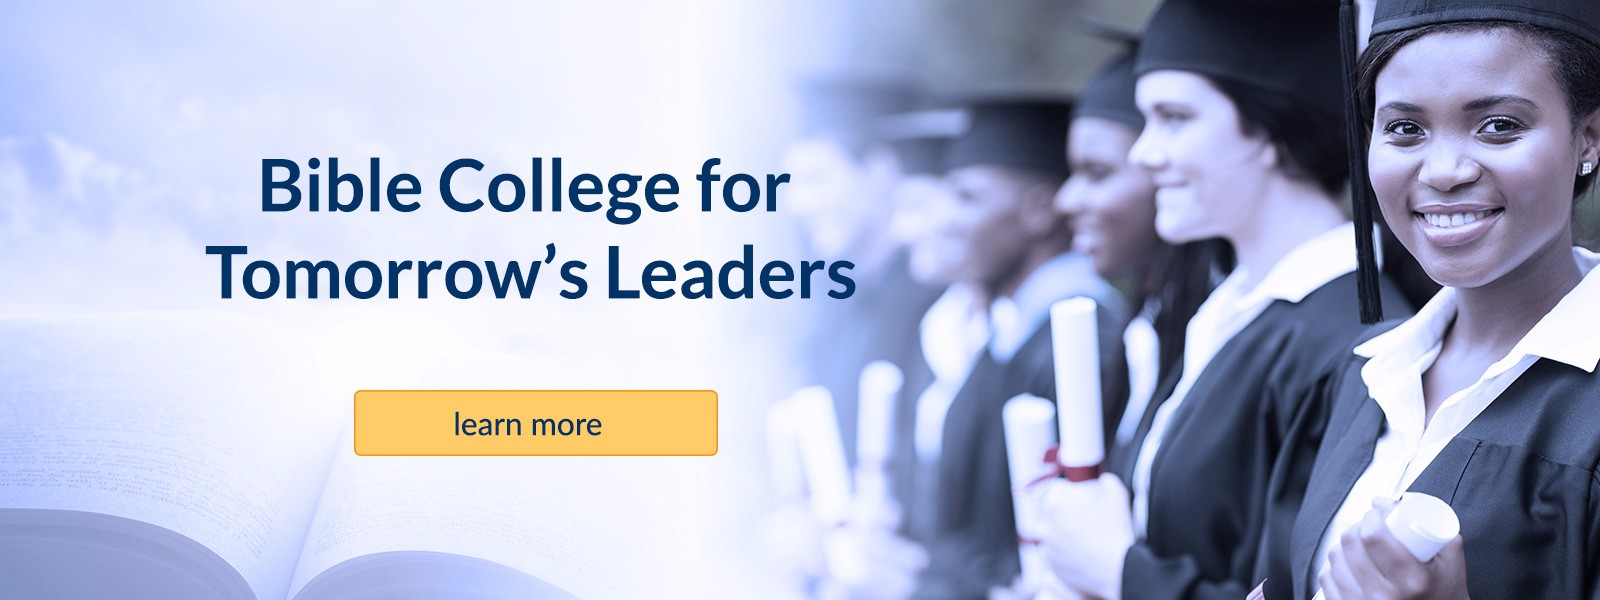 Bible College - learn more